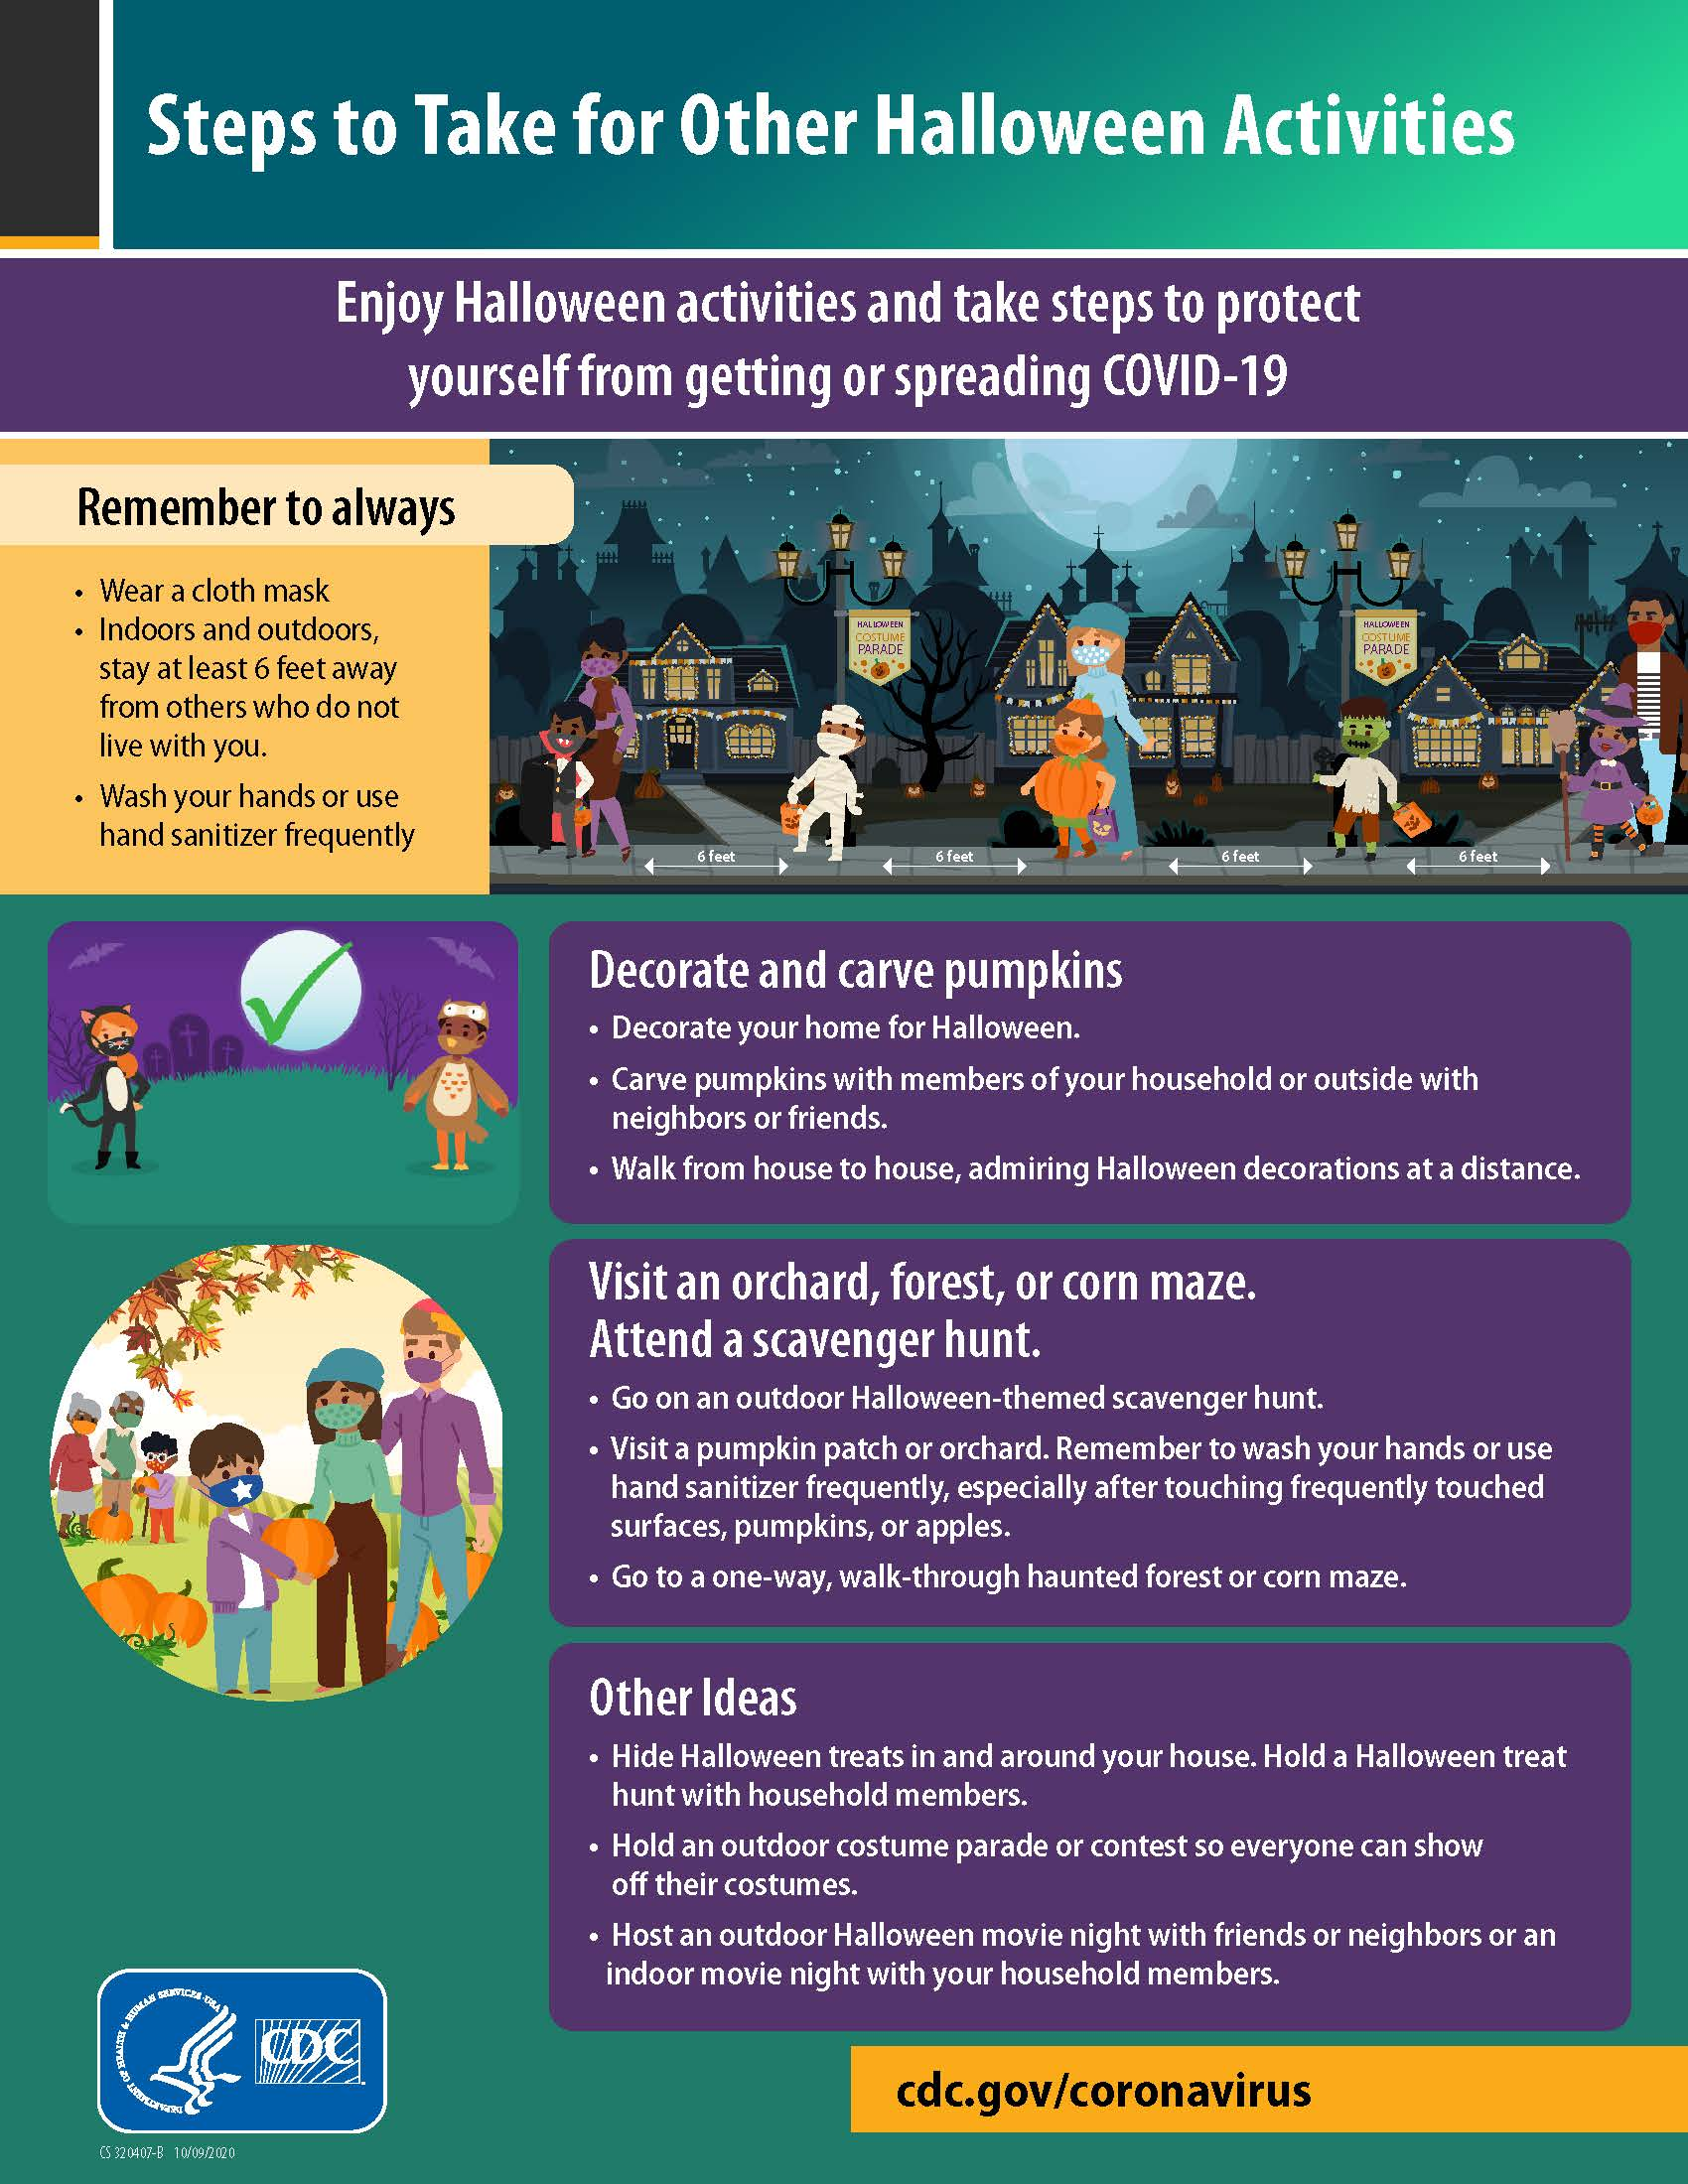 steps to take for other halloween activities